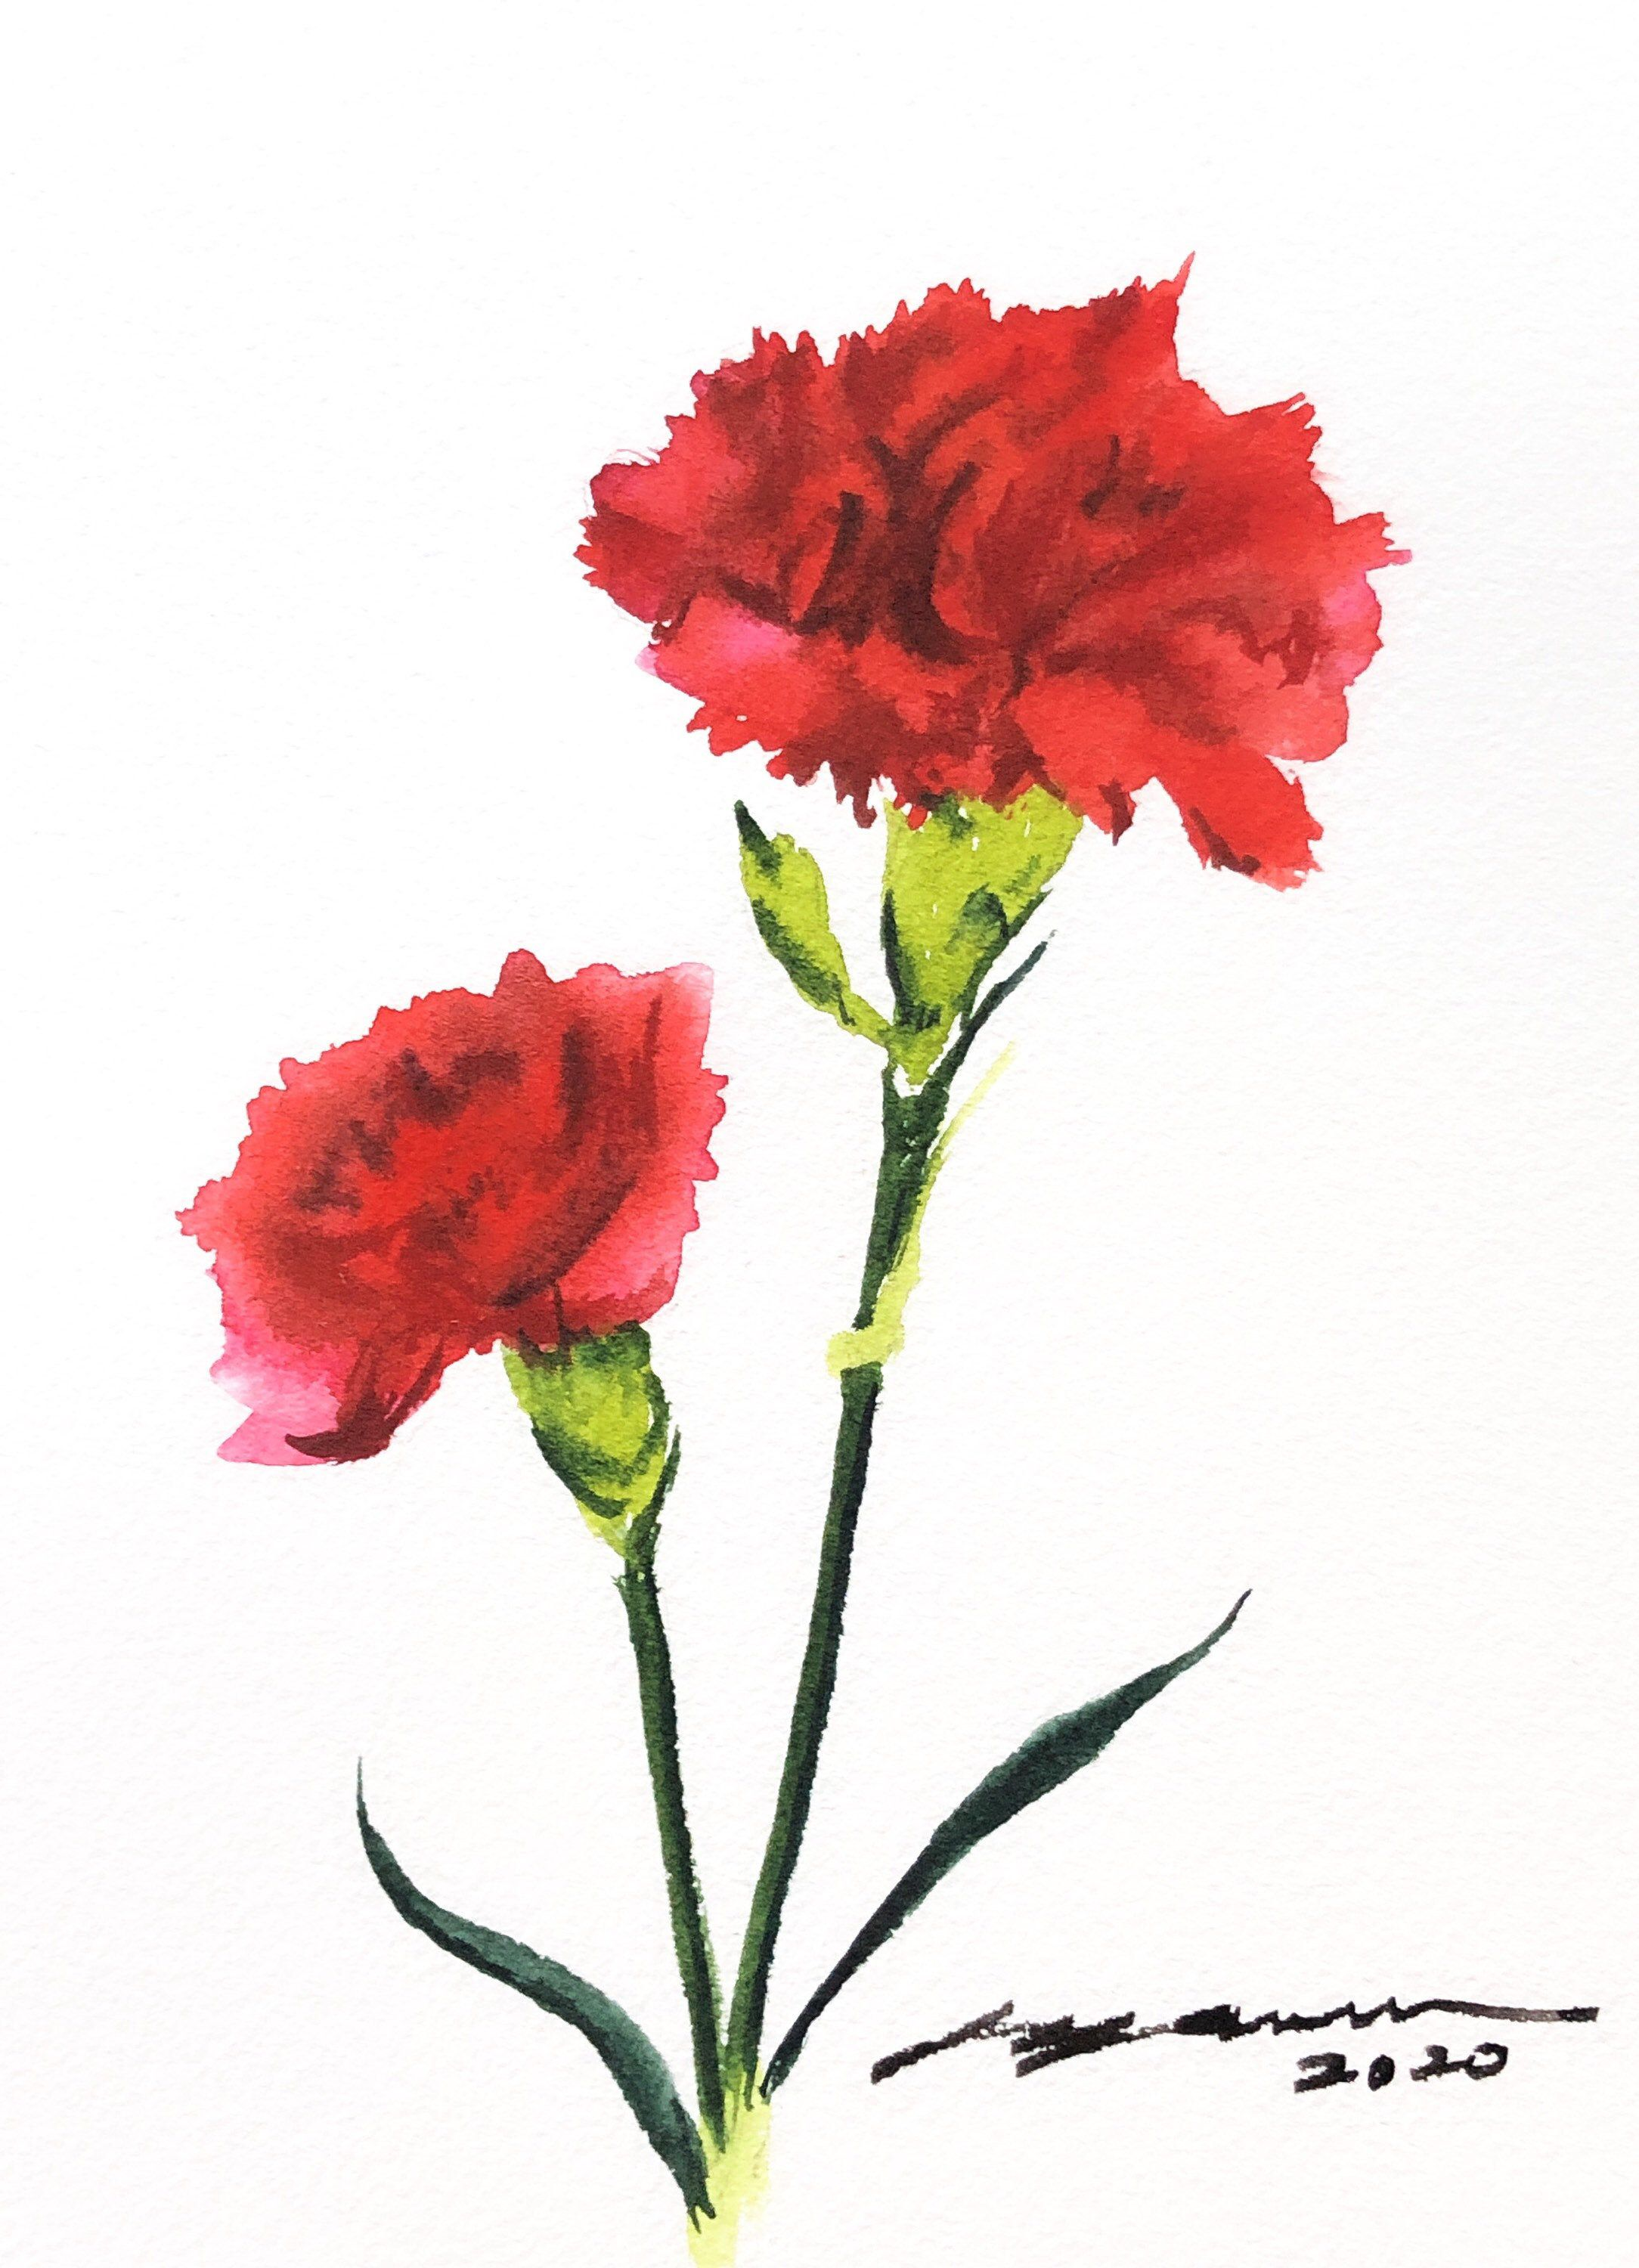 Original Watercolor Red Carnations Painting Mother S Day Gift 5x7 Inches In 2020 Watercolor Flowers Paintings Watercolor Red Red Carnation